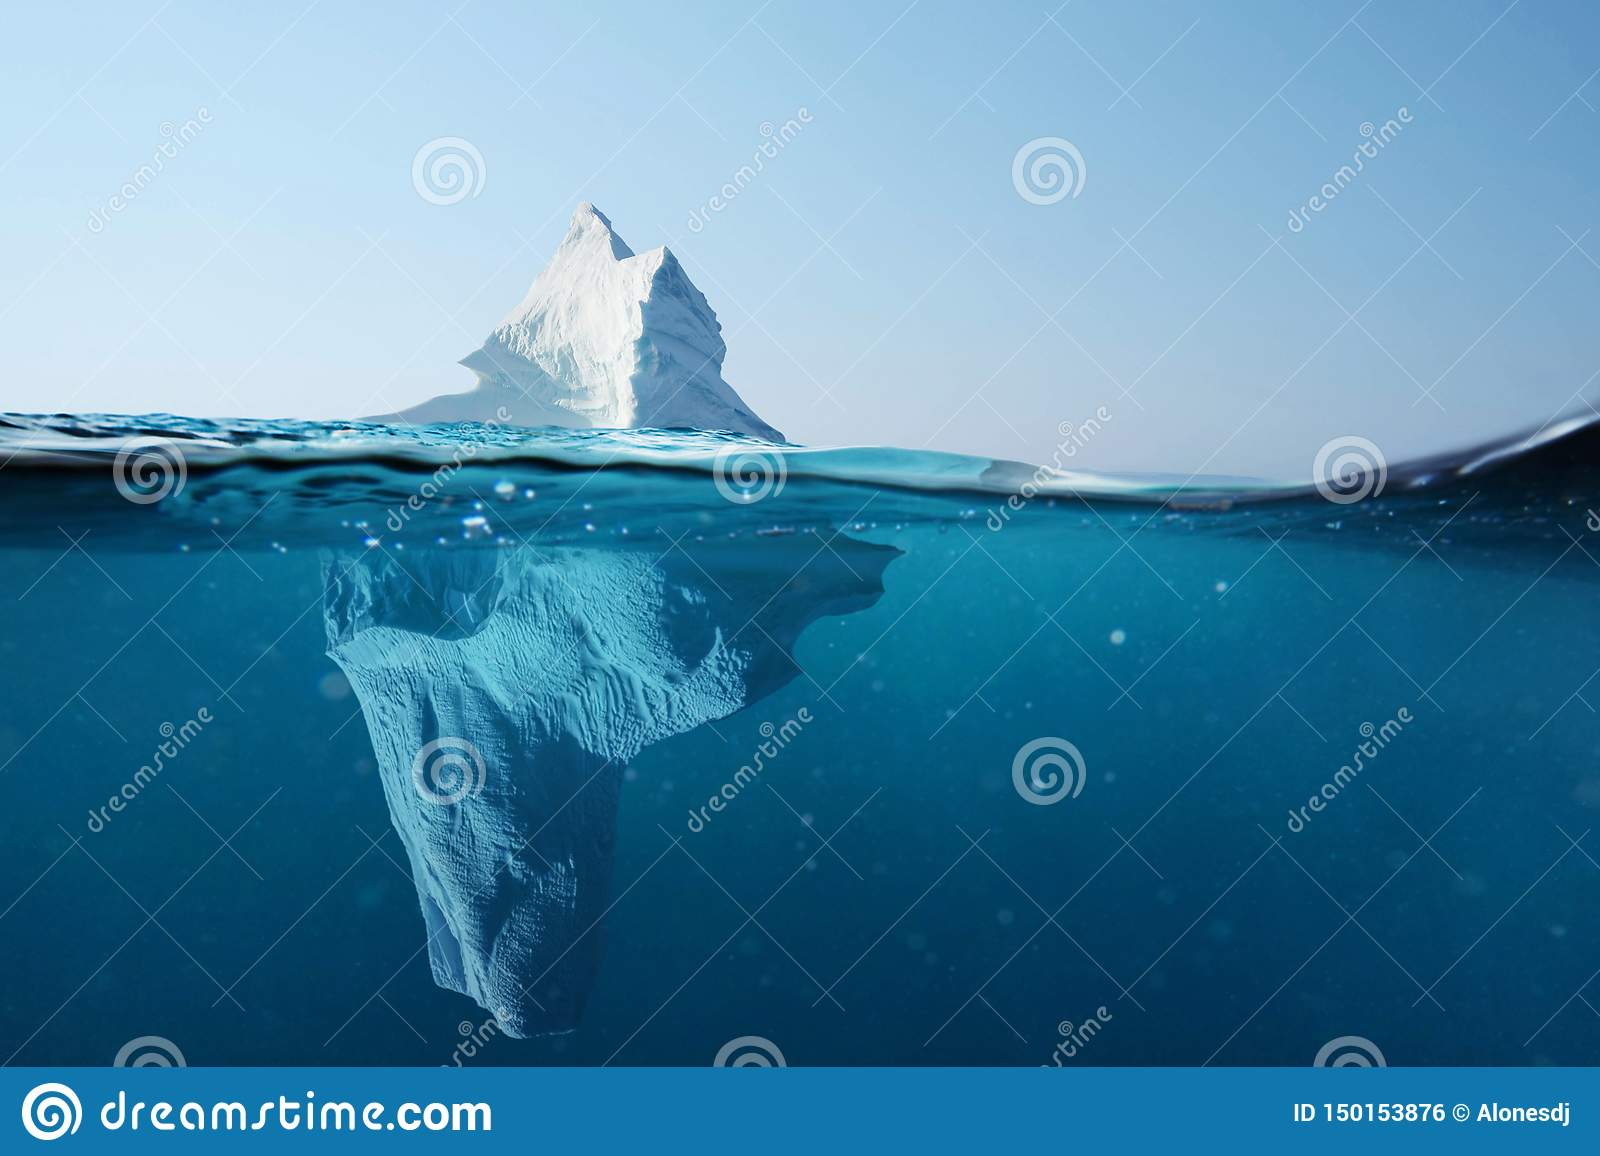 Iceberg in the ocean with a view under water. Crystal clear water. Hidden Danger And Global Warming Concept.